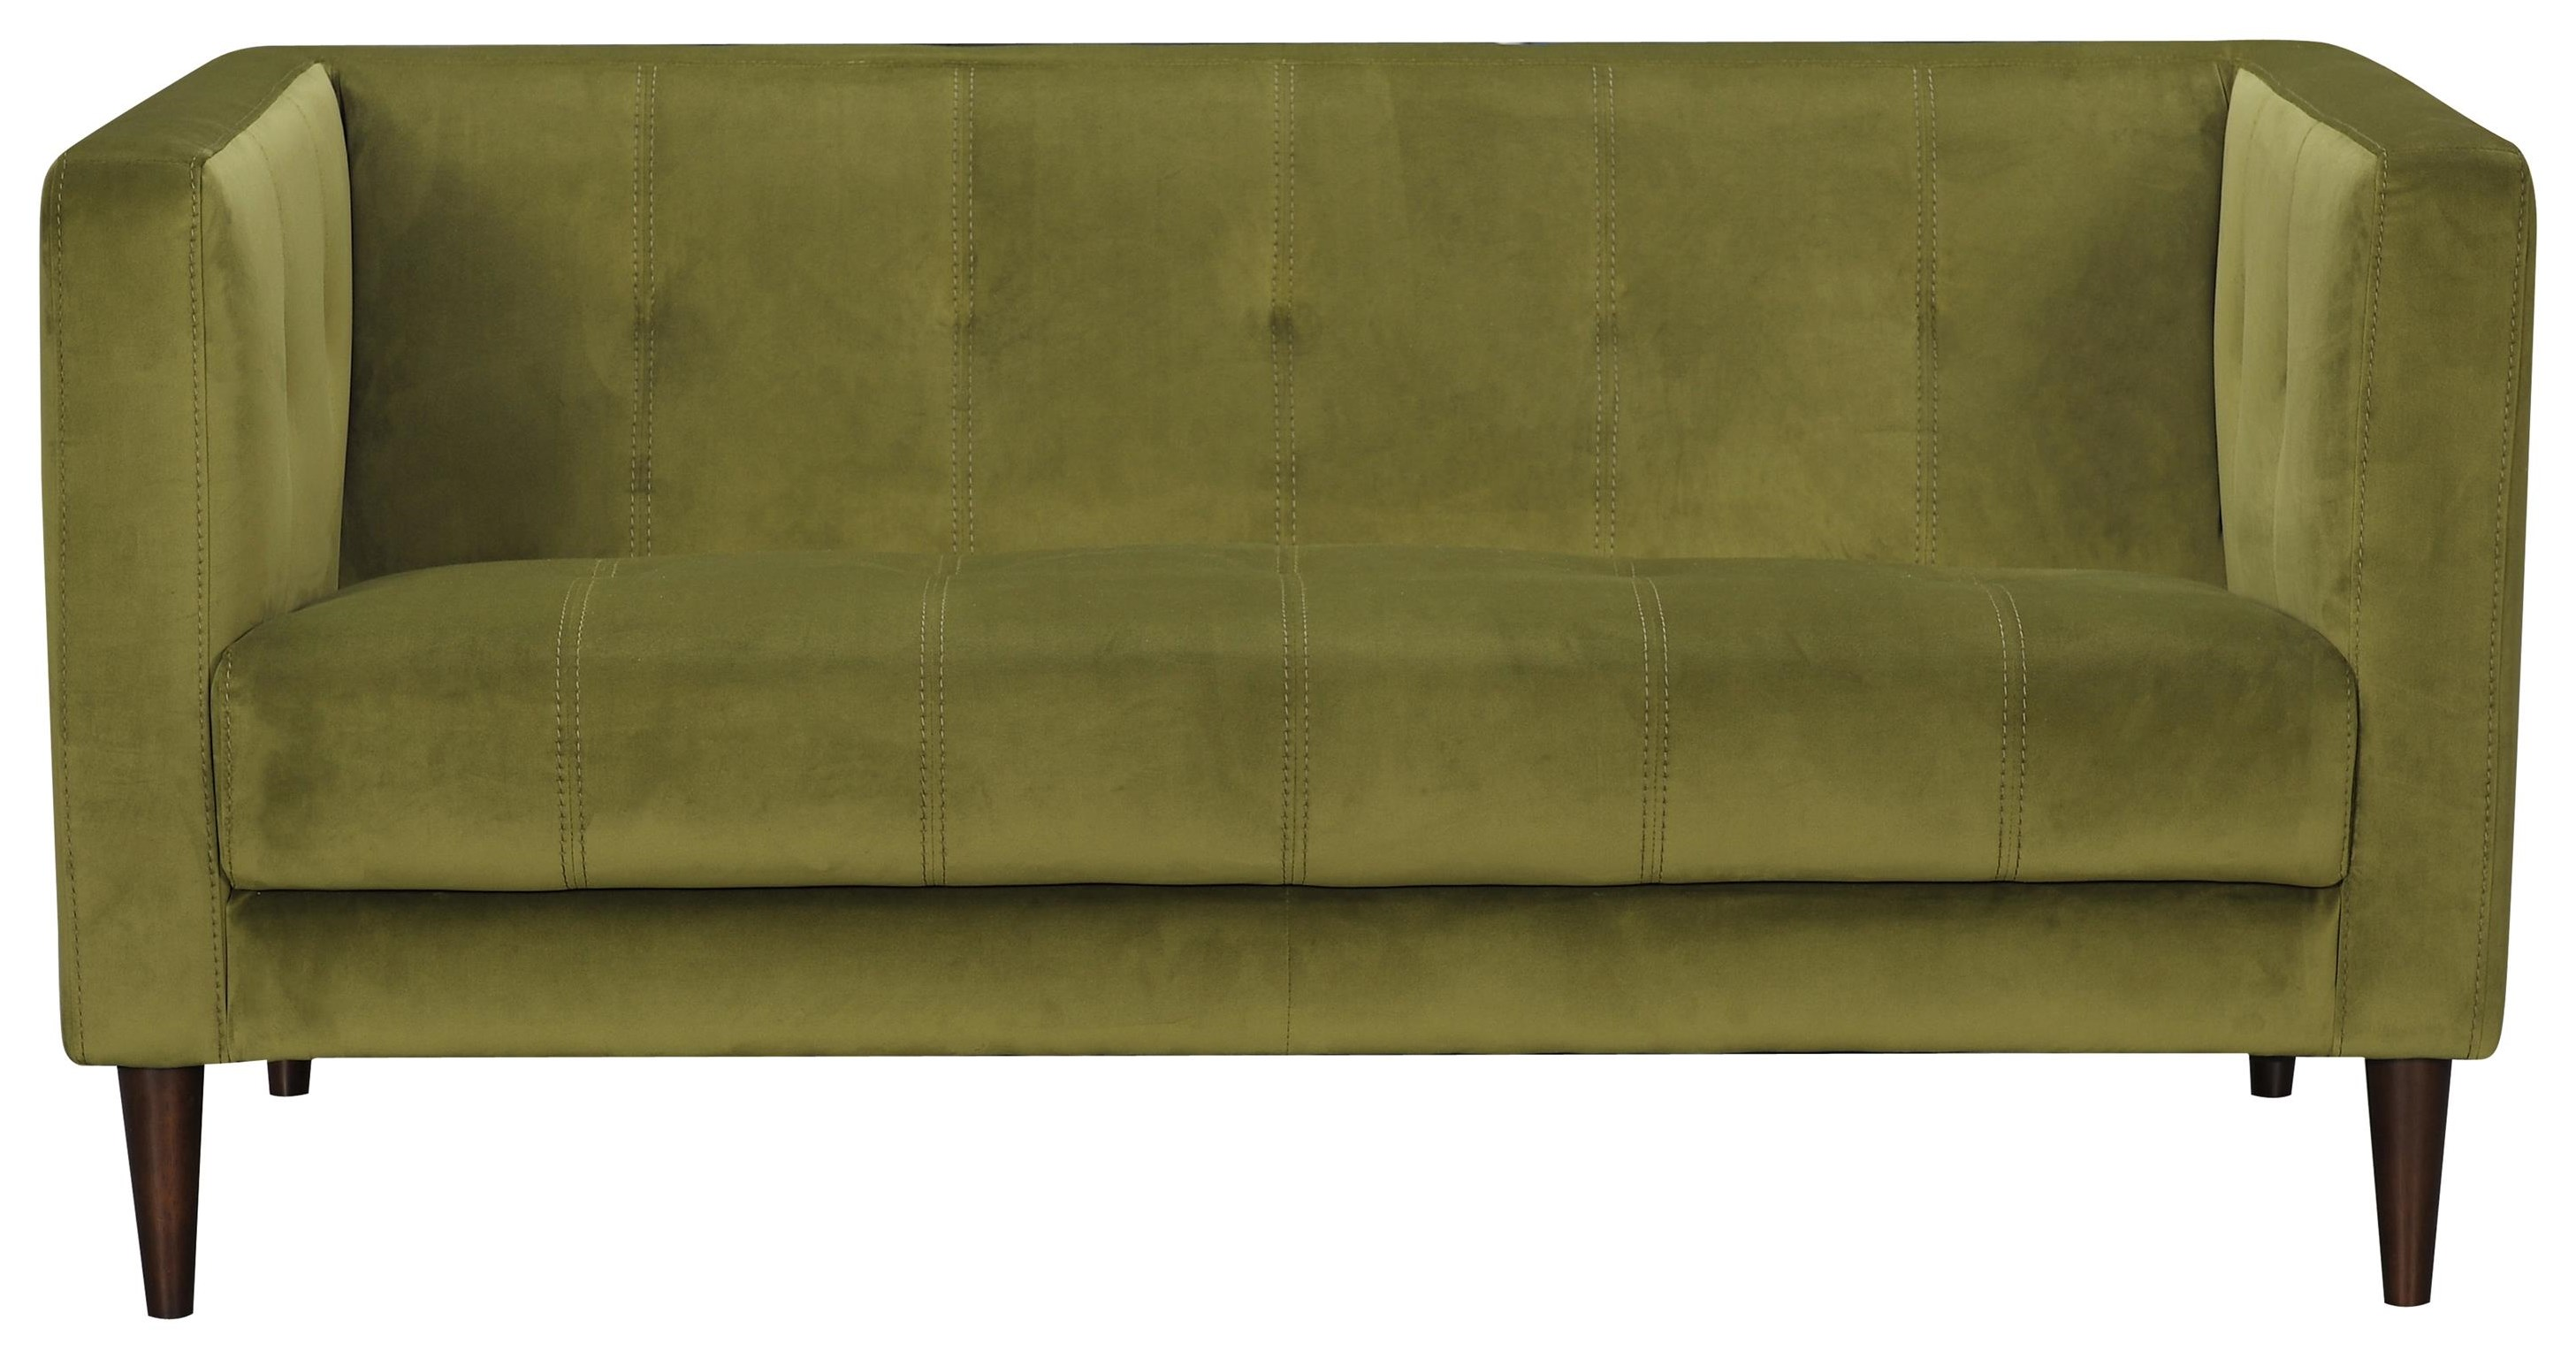 Olivia Loveseat by Violino at HomeWorld Furniture